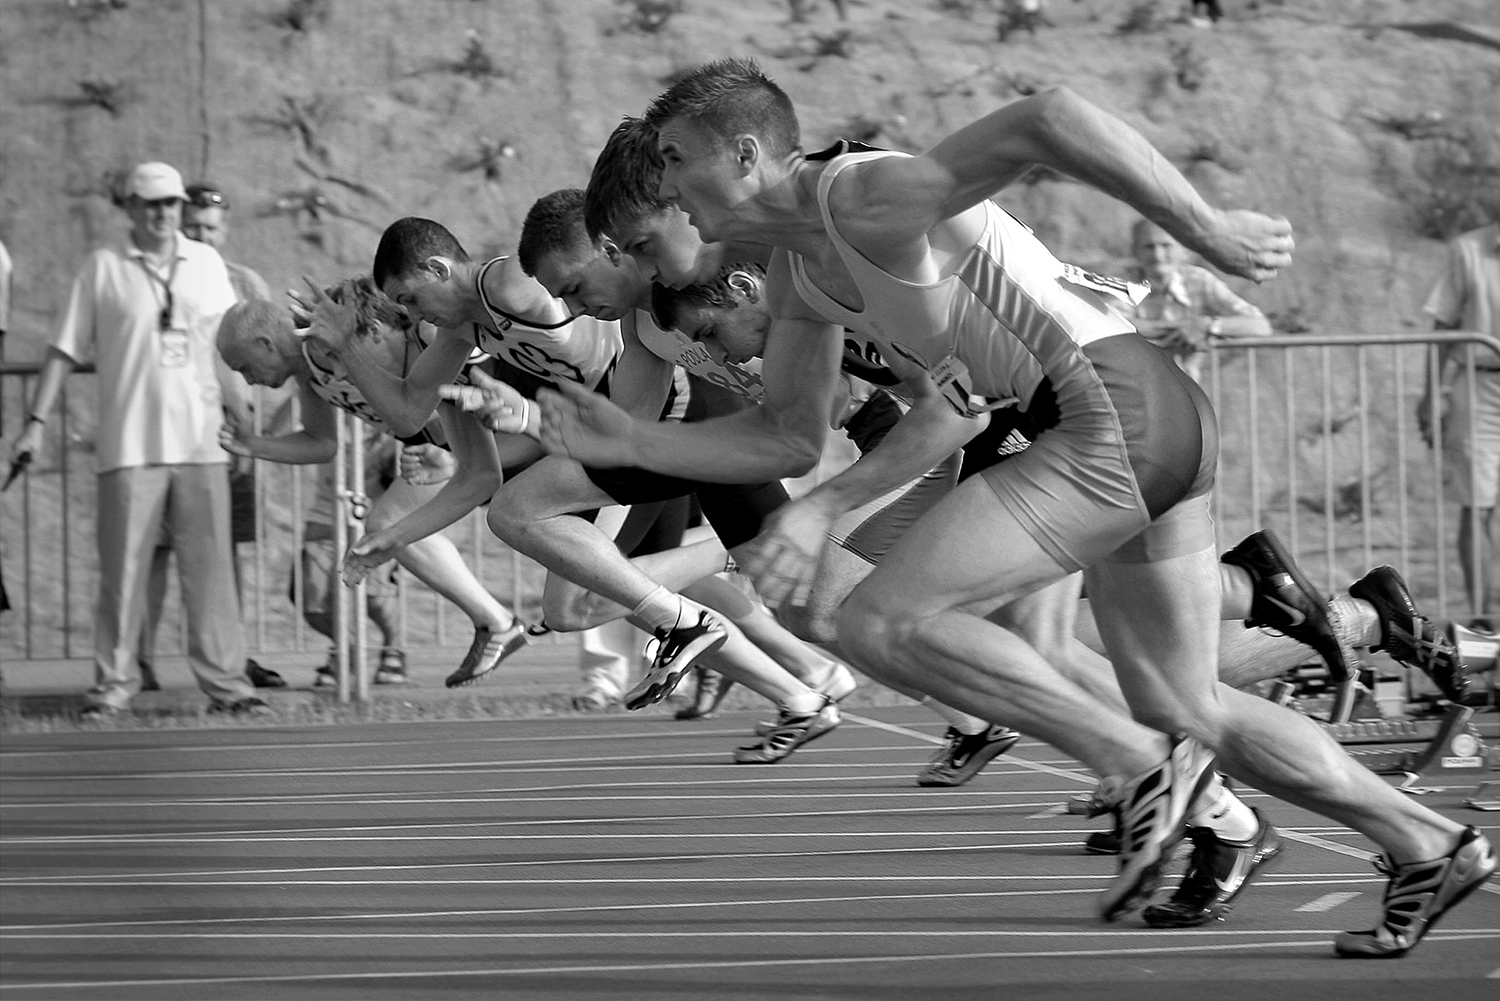 Athletes Starting A Running Competition In The Field Track